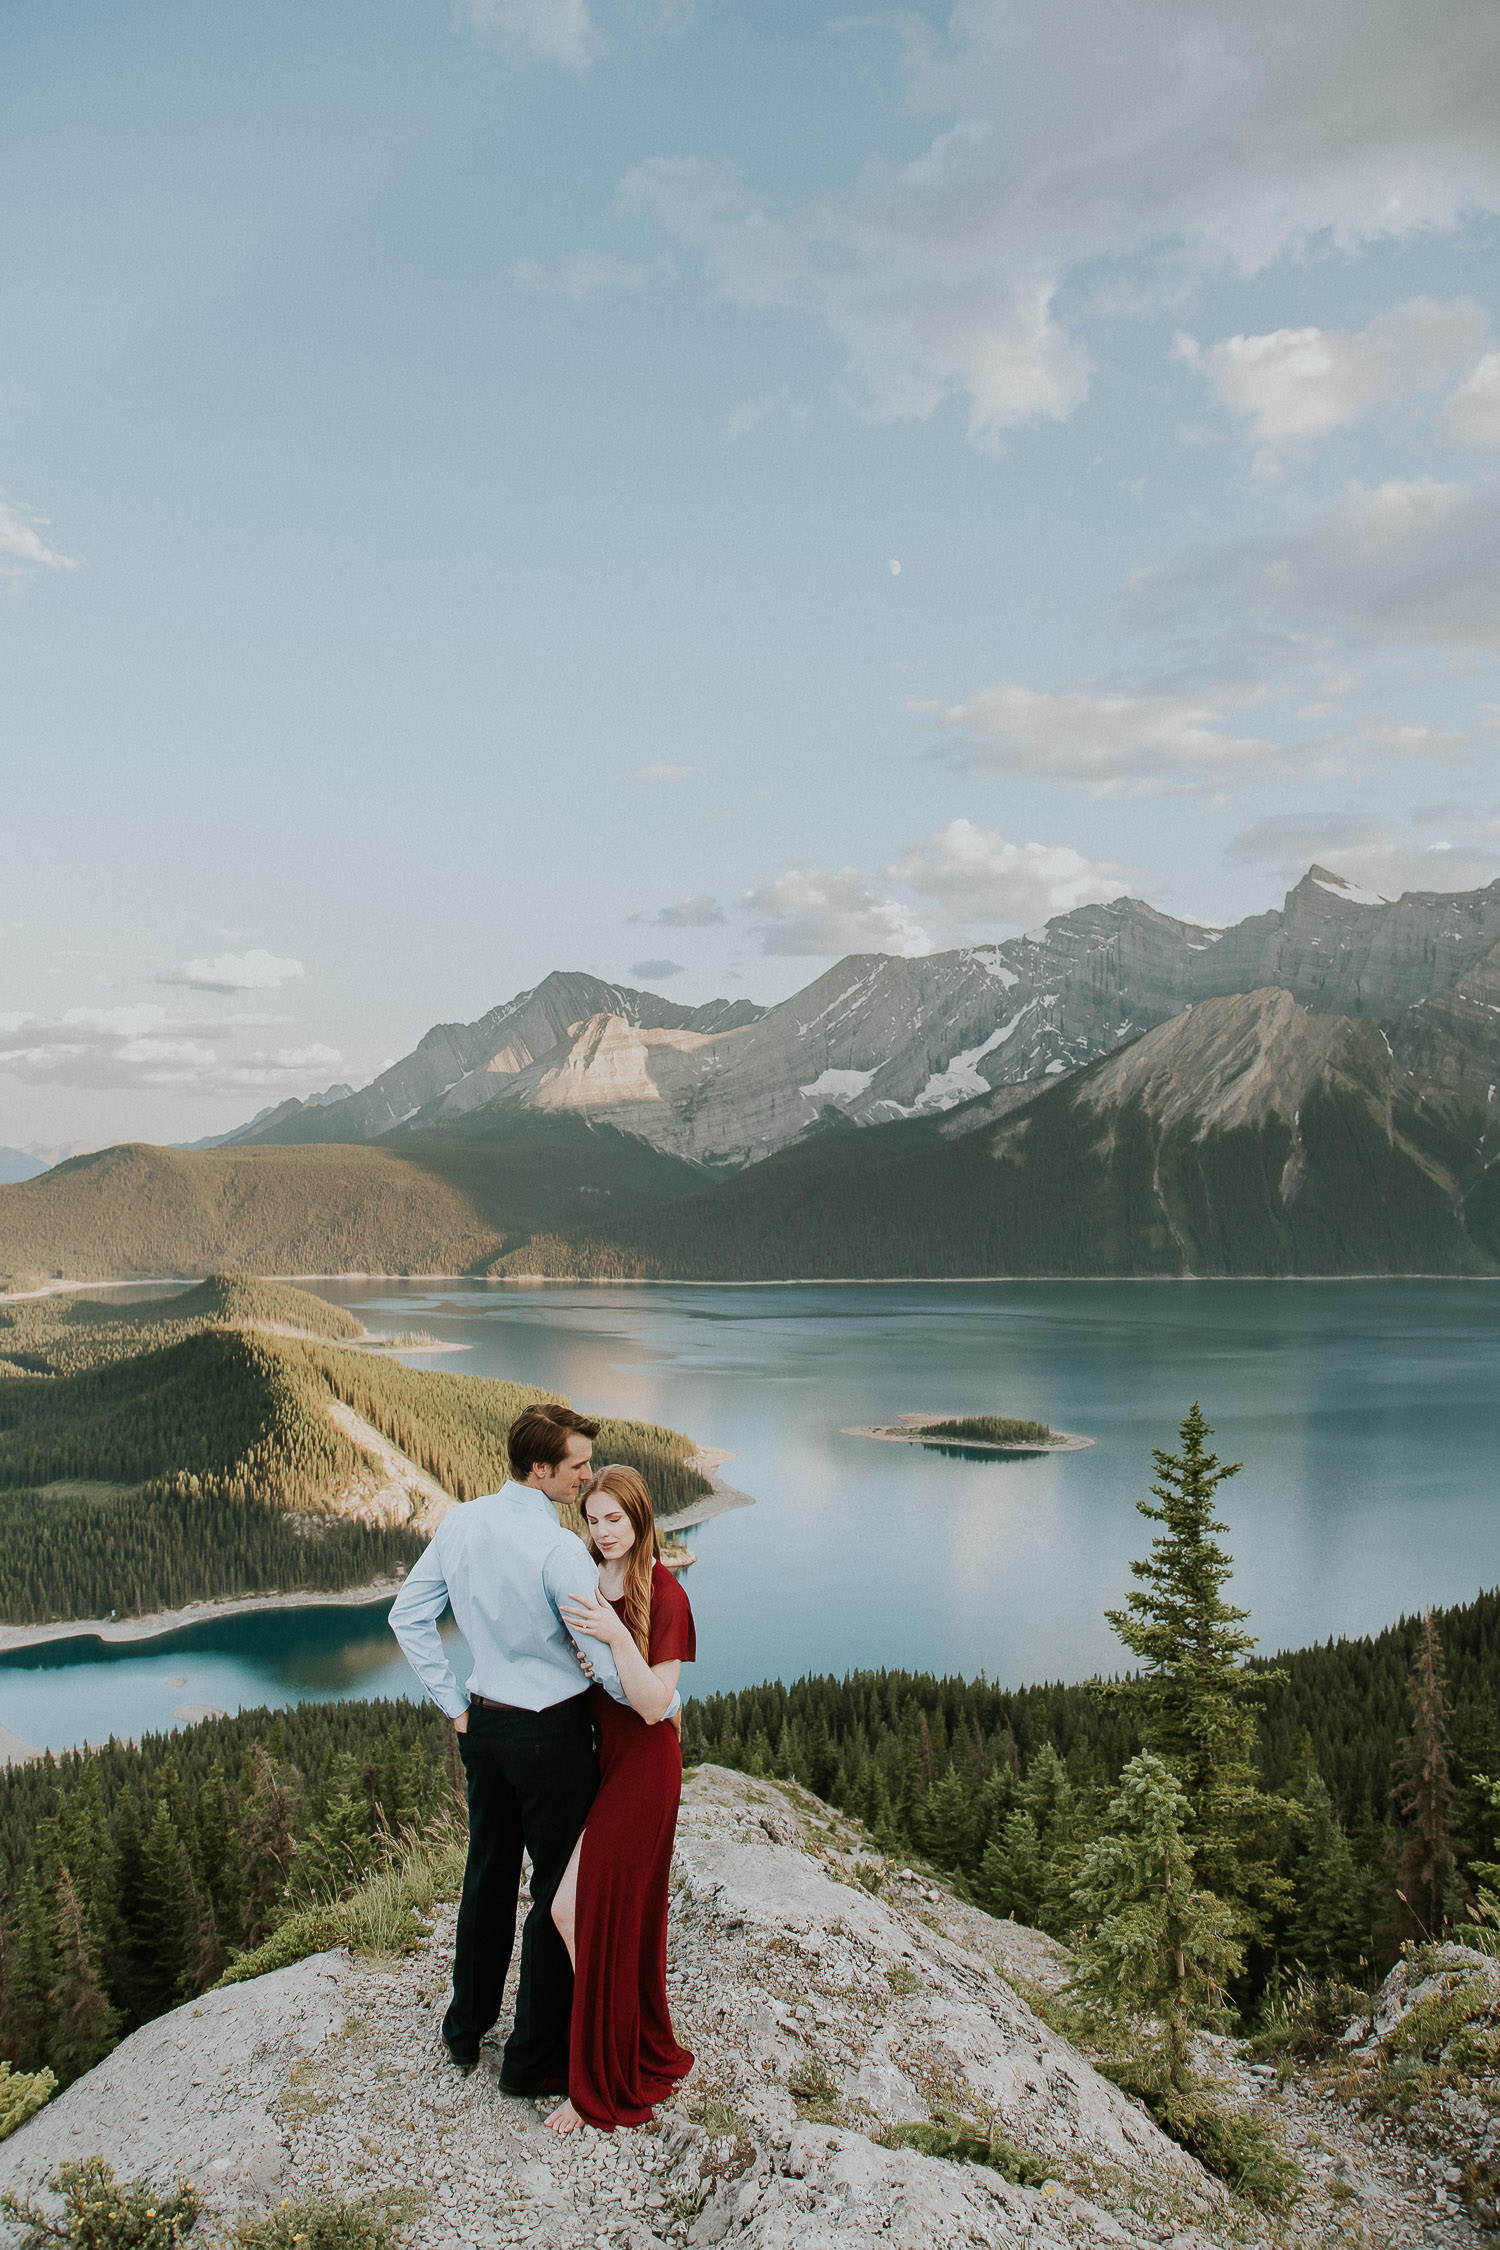 Views from the top of a mountain in the Canadian Rockies - Sarah Pukin